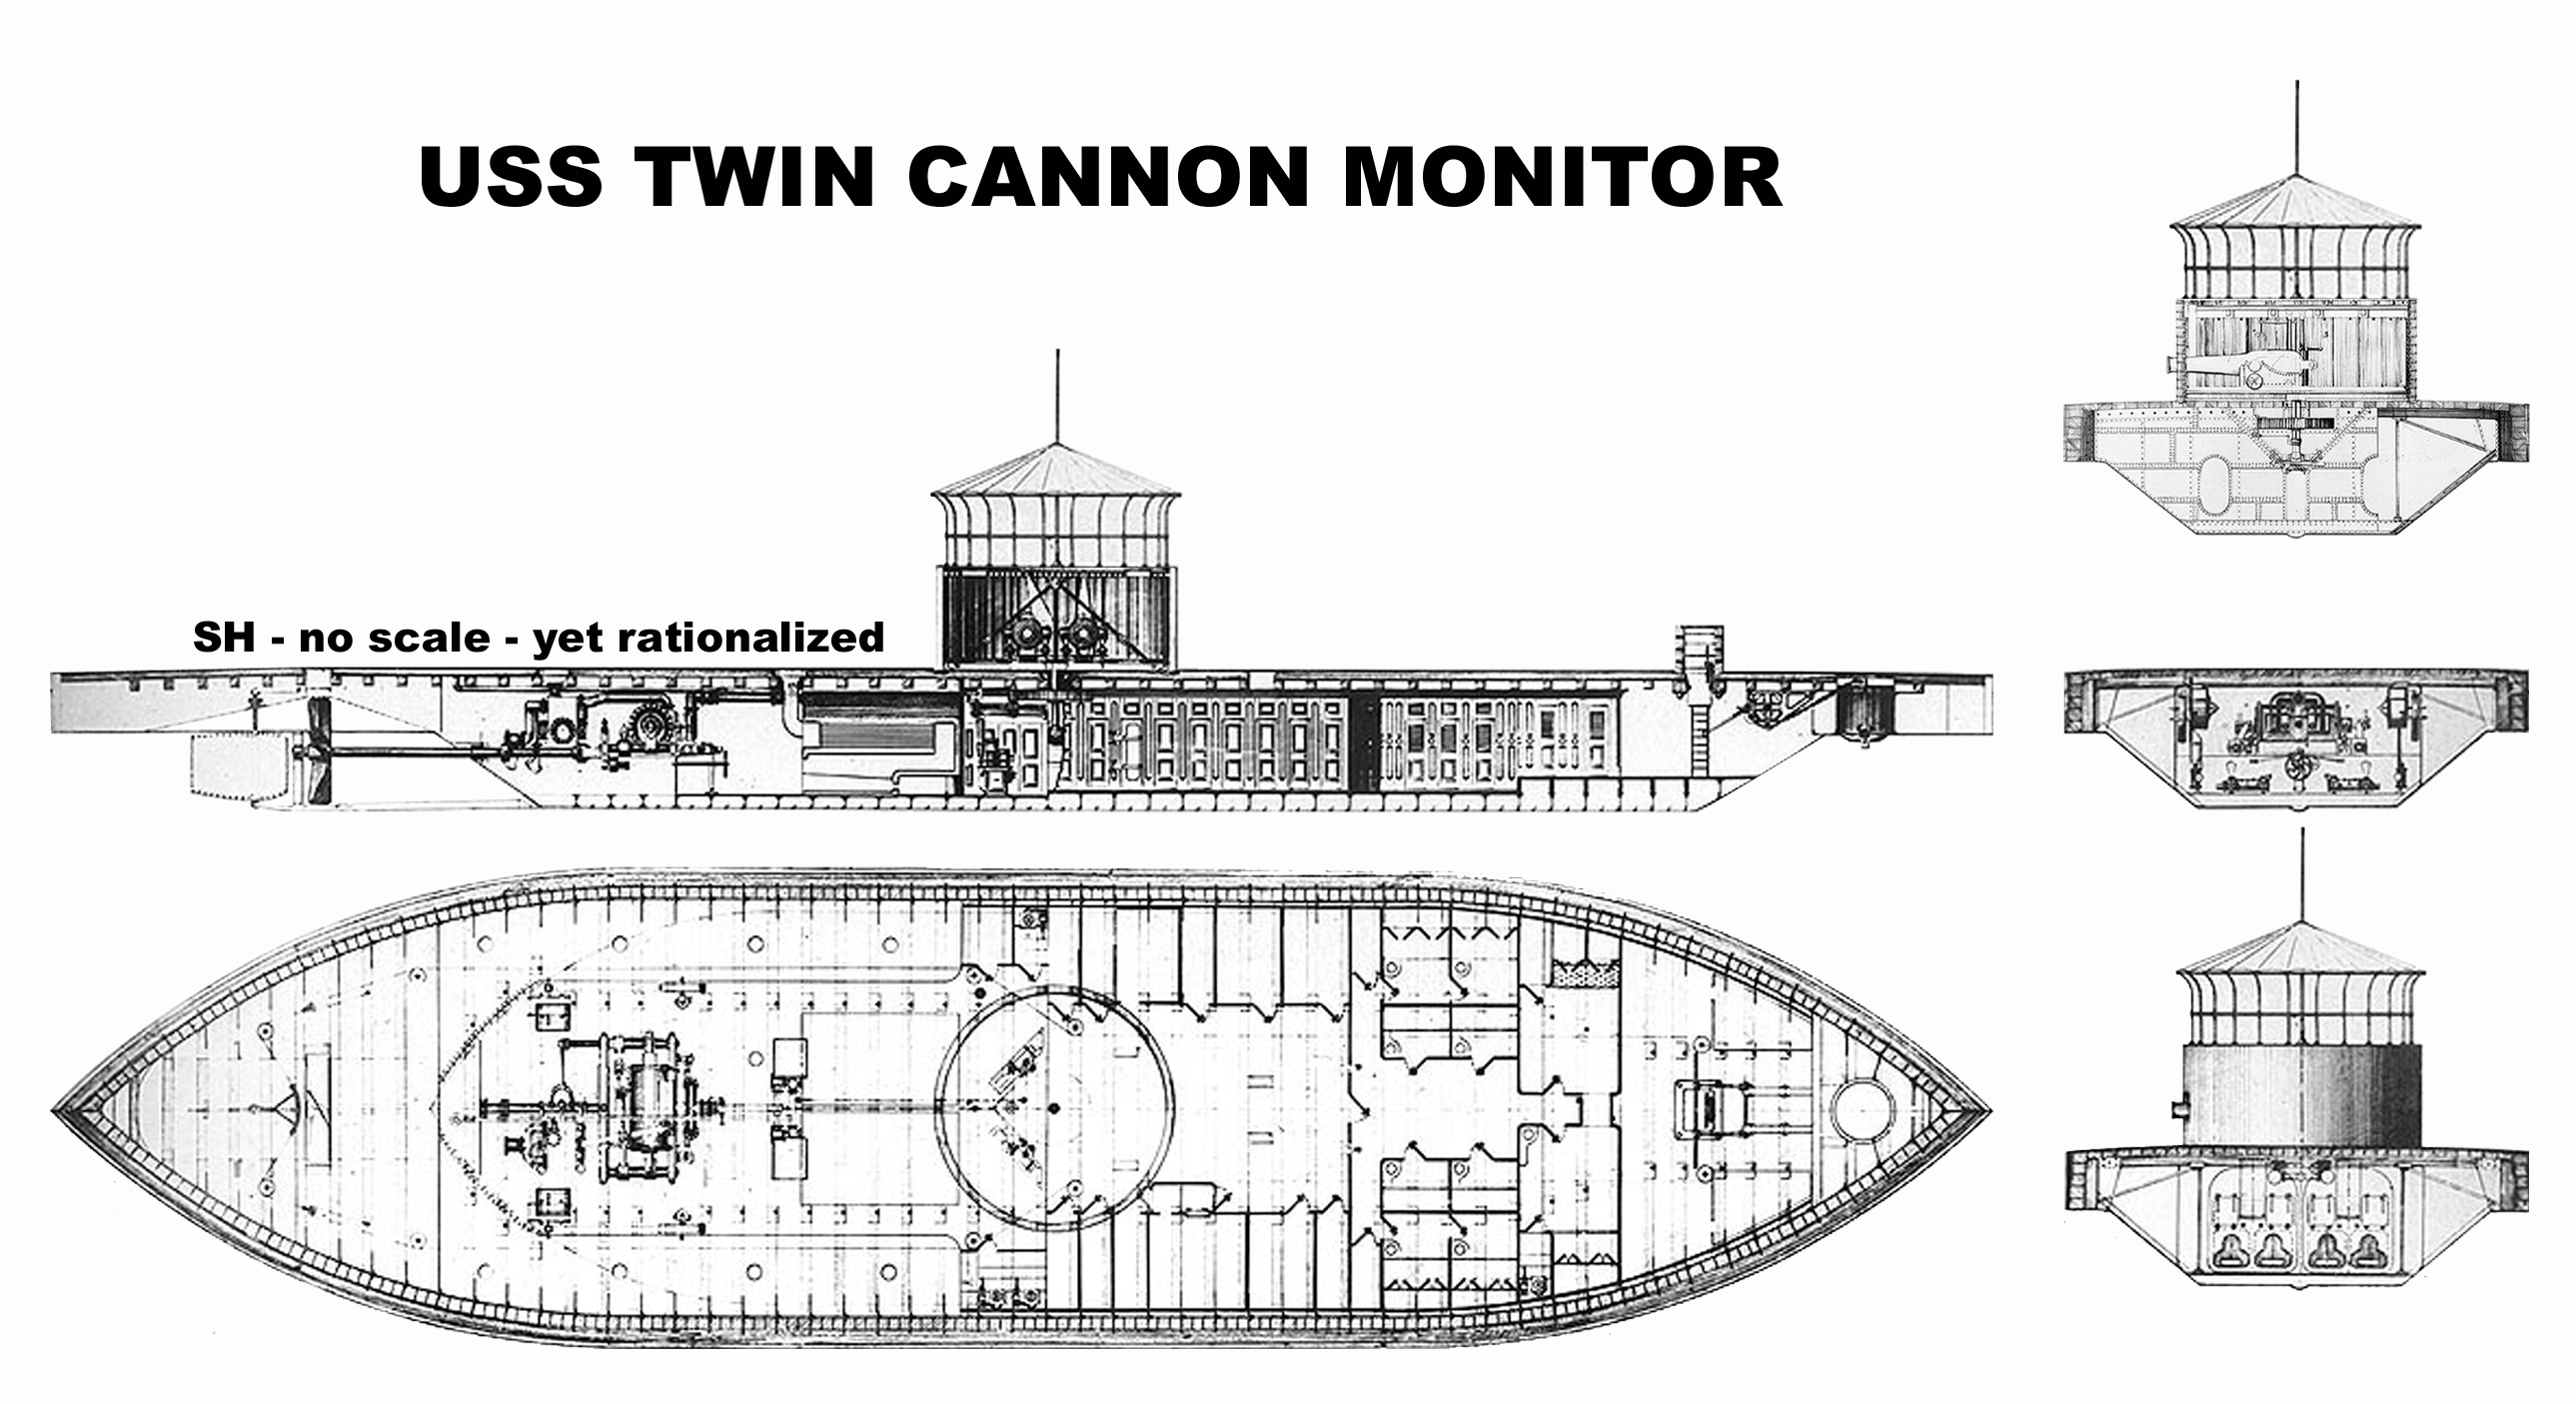 Marine Drum Switch Wiring Diagram Starting Know About Carling Technologies Uss Monitor Library